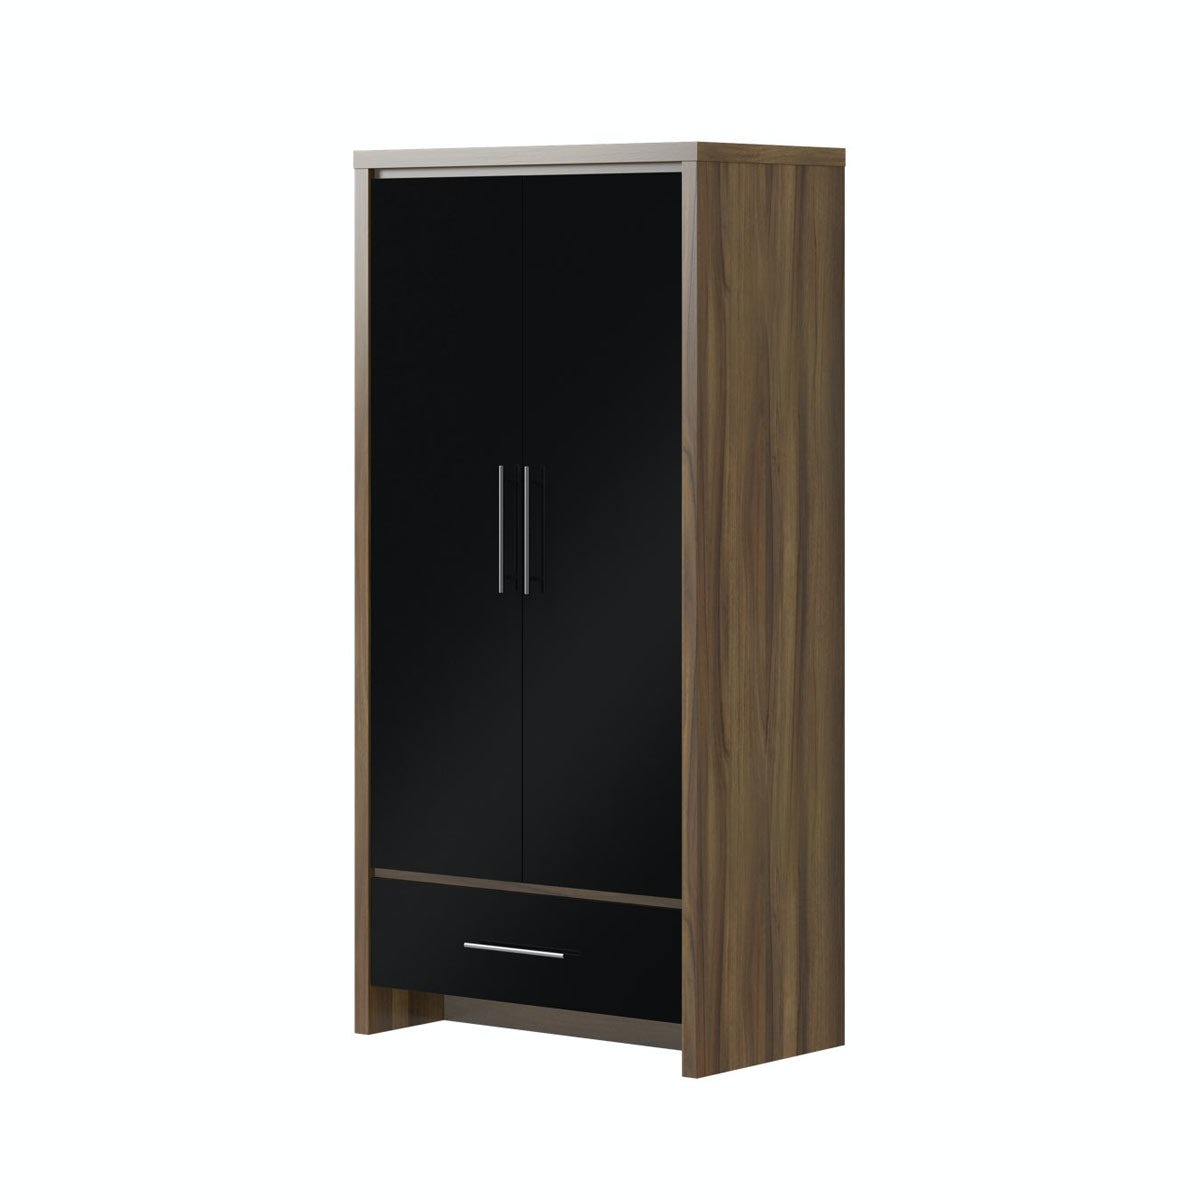 Mfi london walnut and black gloss 2 door 1 drawer for 1 door wardrobe with drawers